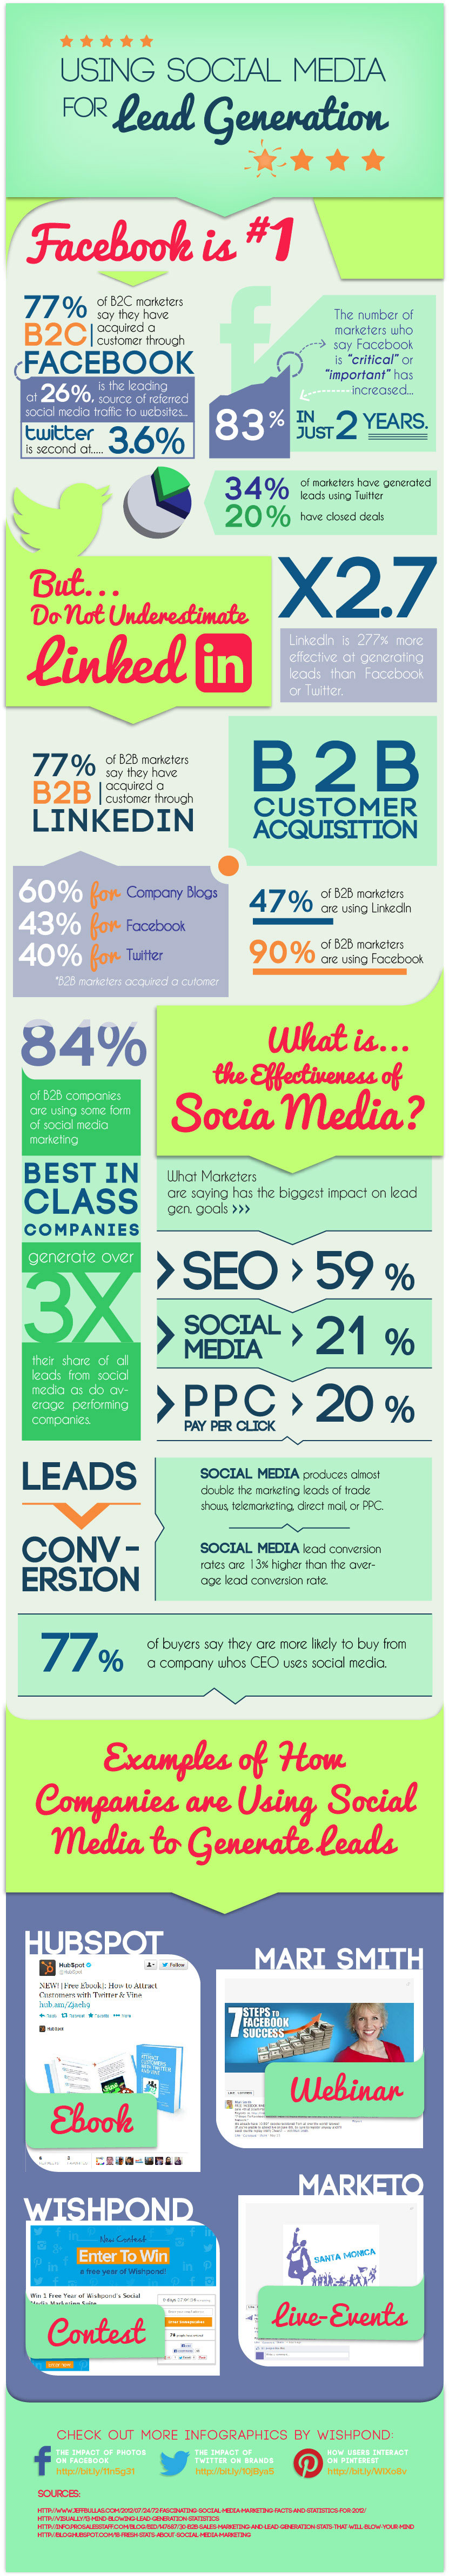 Using social media/lead generation poster